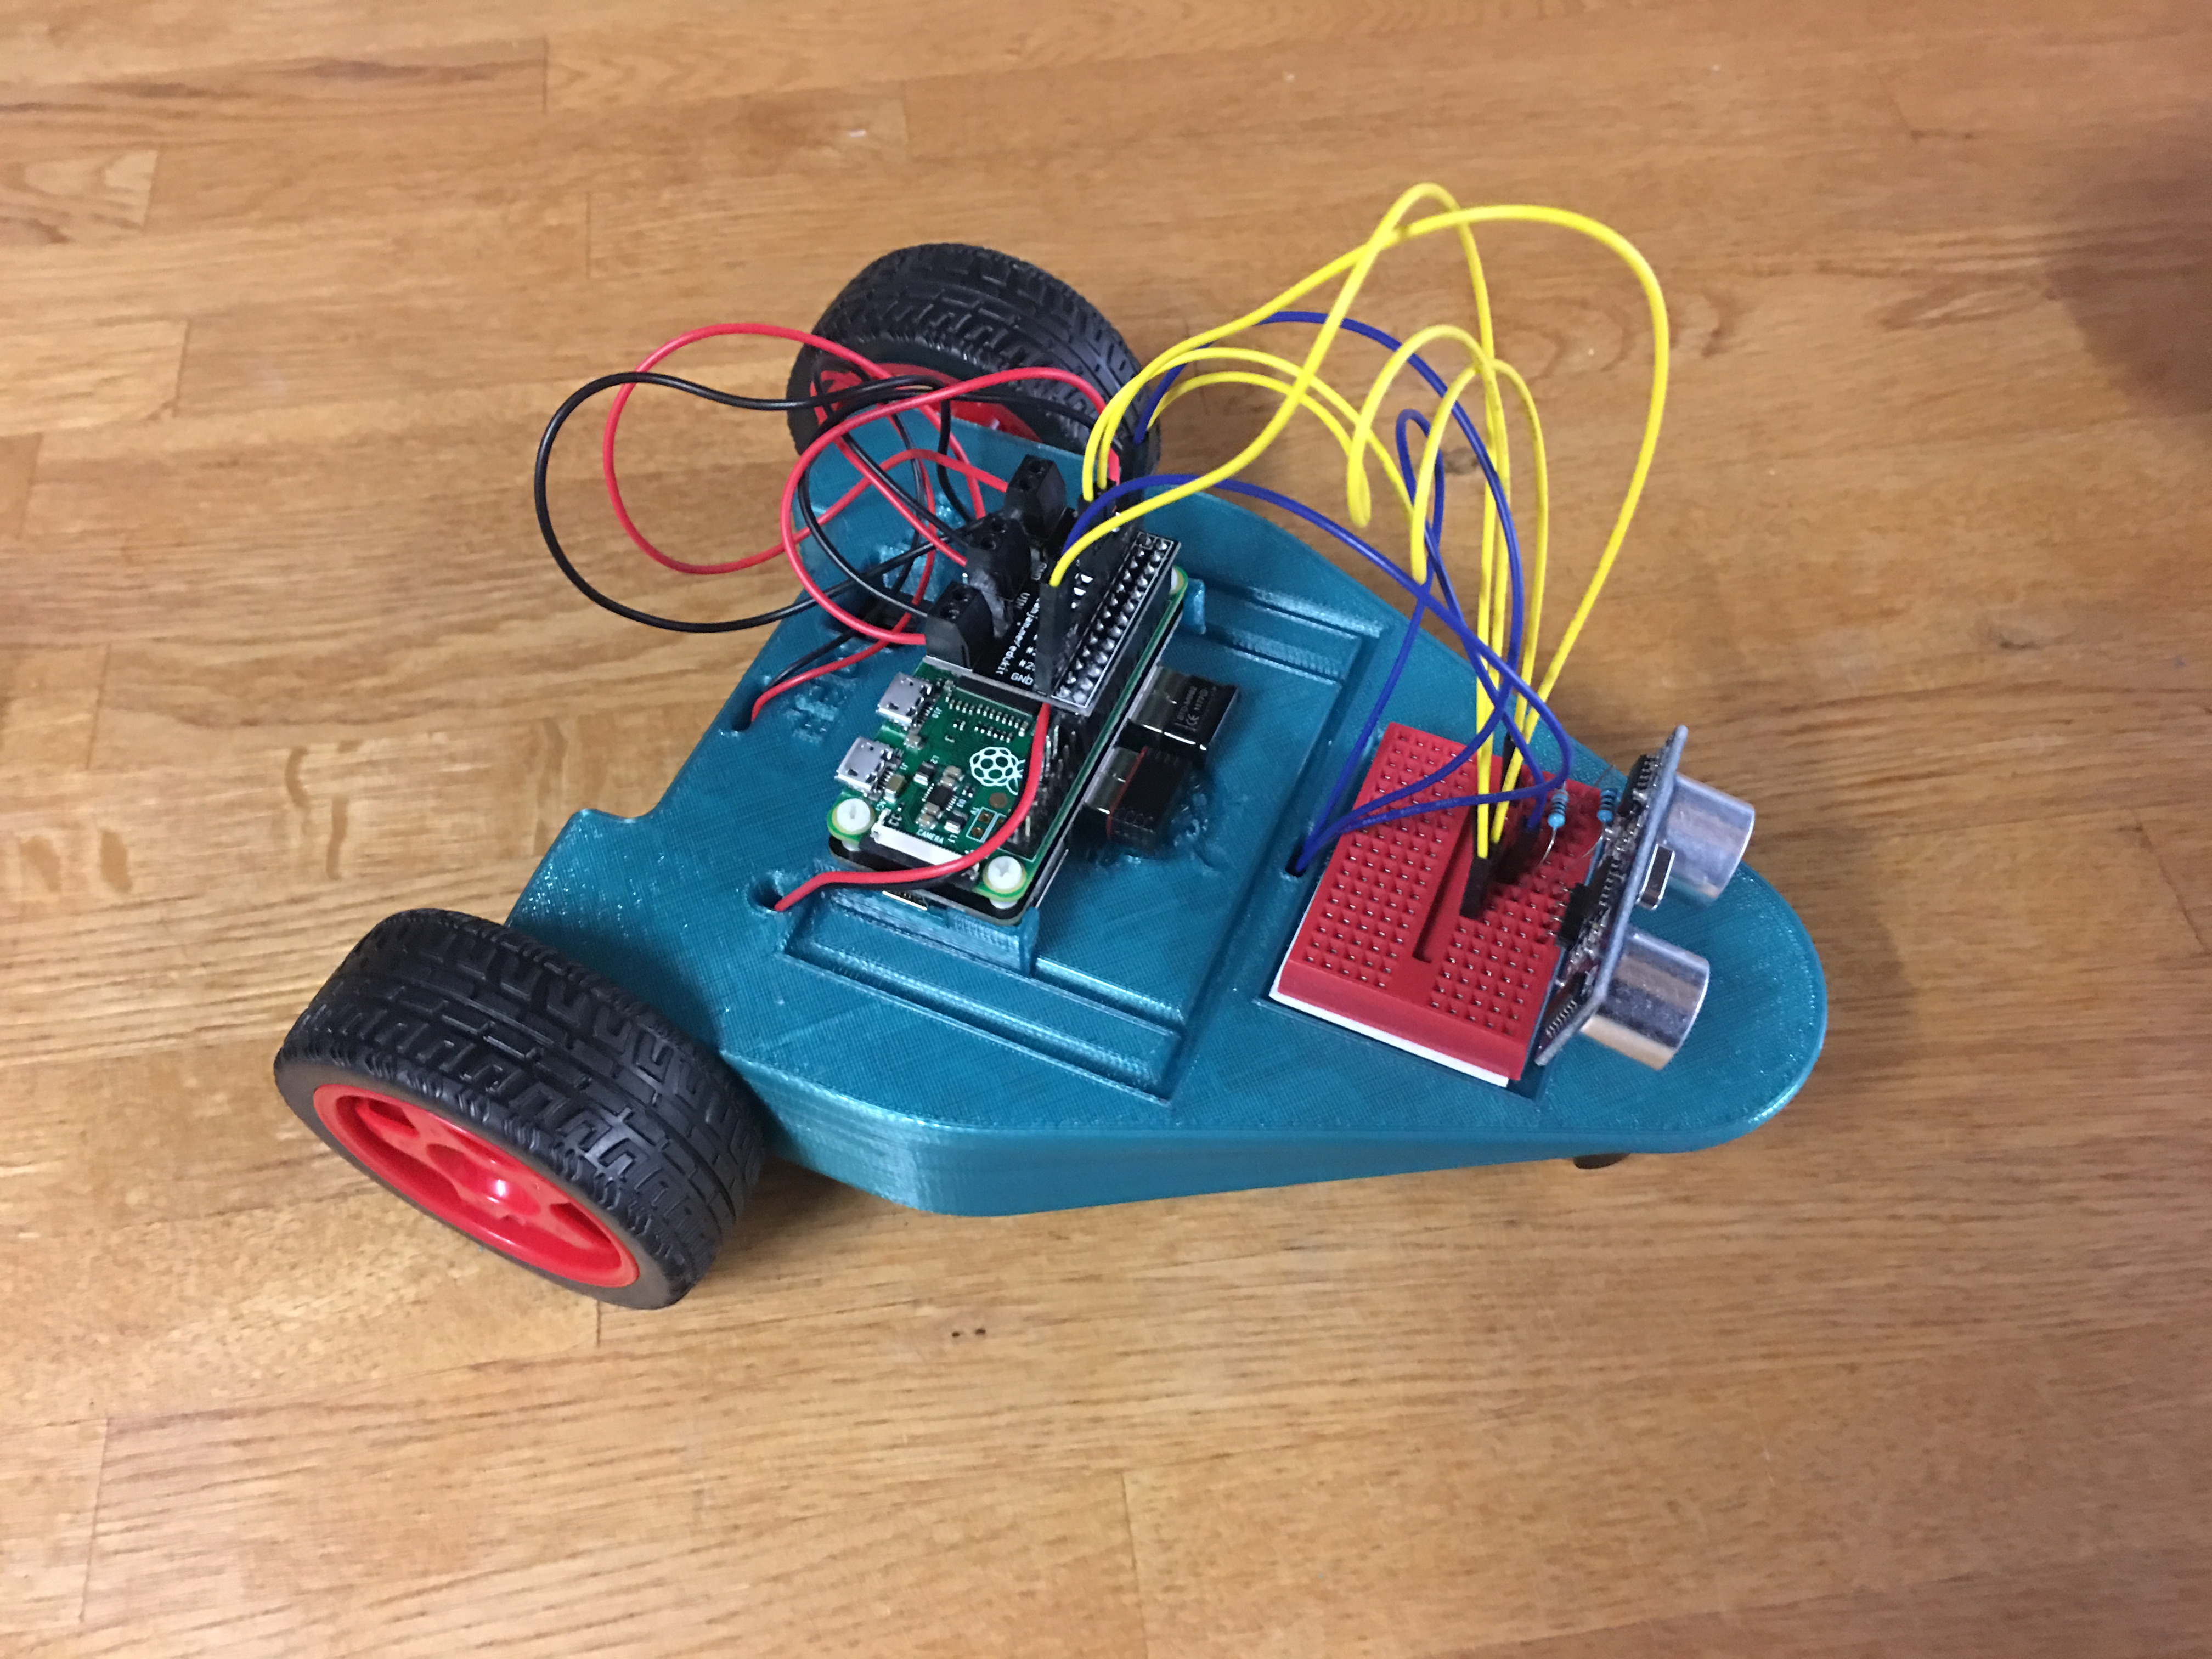 CamJam EduKit #3 Robot Chassis for the Raspberry Pi by Aftakas